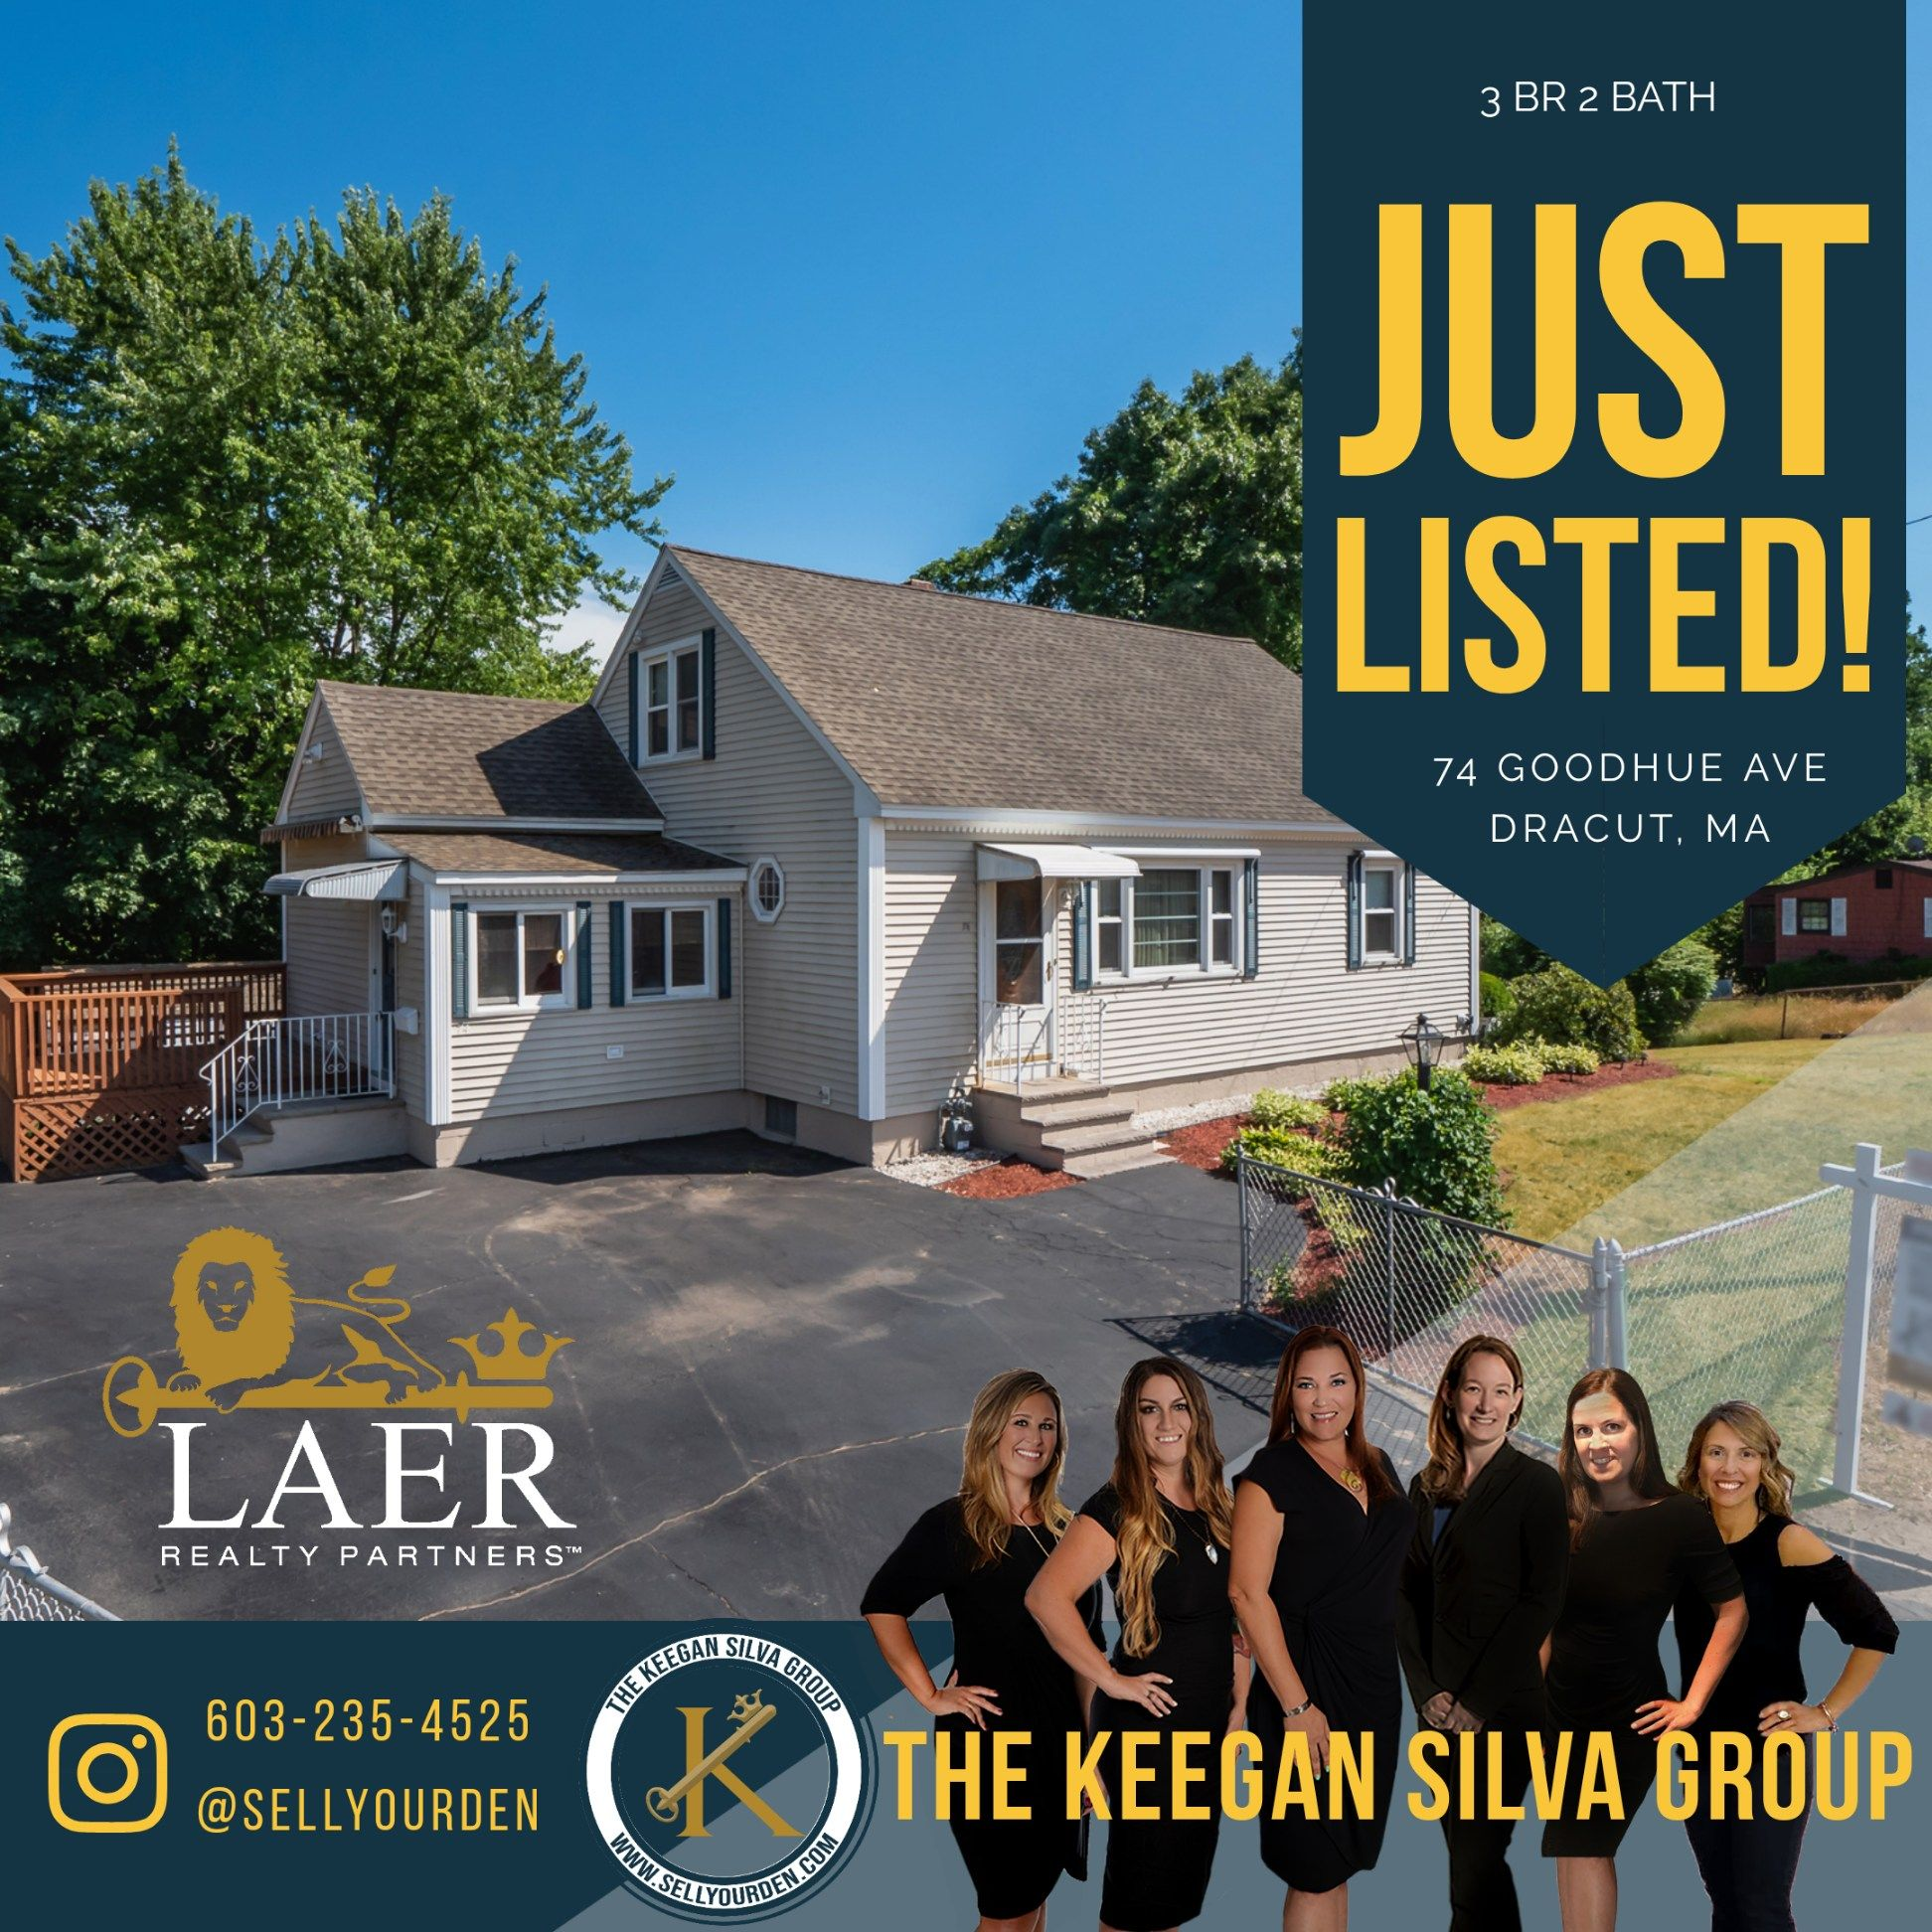 💥Just listed!💥 This Dracut three bedroom home is now available with two full baths, over a 1/4 acre lot and so much more! Reach out for mor info! $334,900 #Realtor #RealEstate #Dracut #JustListed #TheKeeganSilvaGroup #SilverKeyHomes #LaerRealty #home #marketingexperts